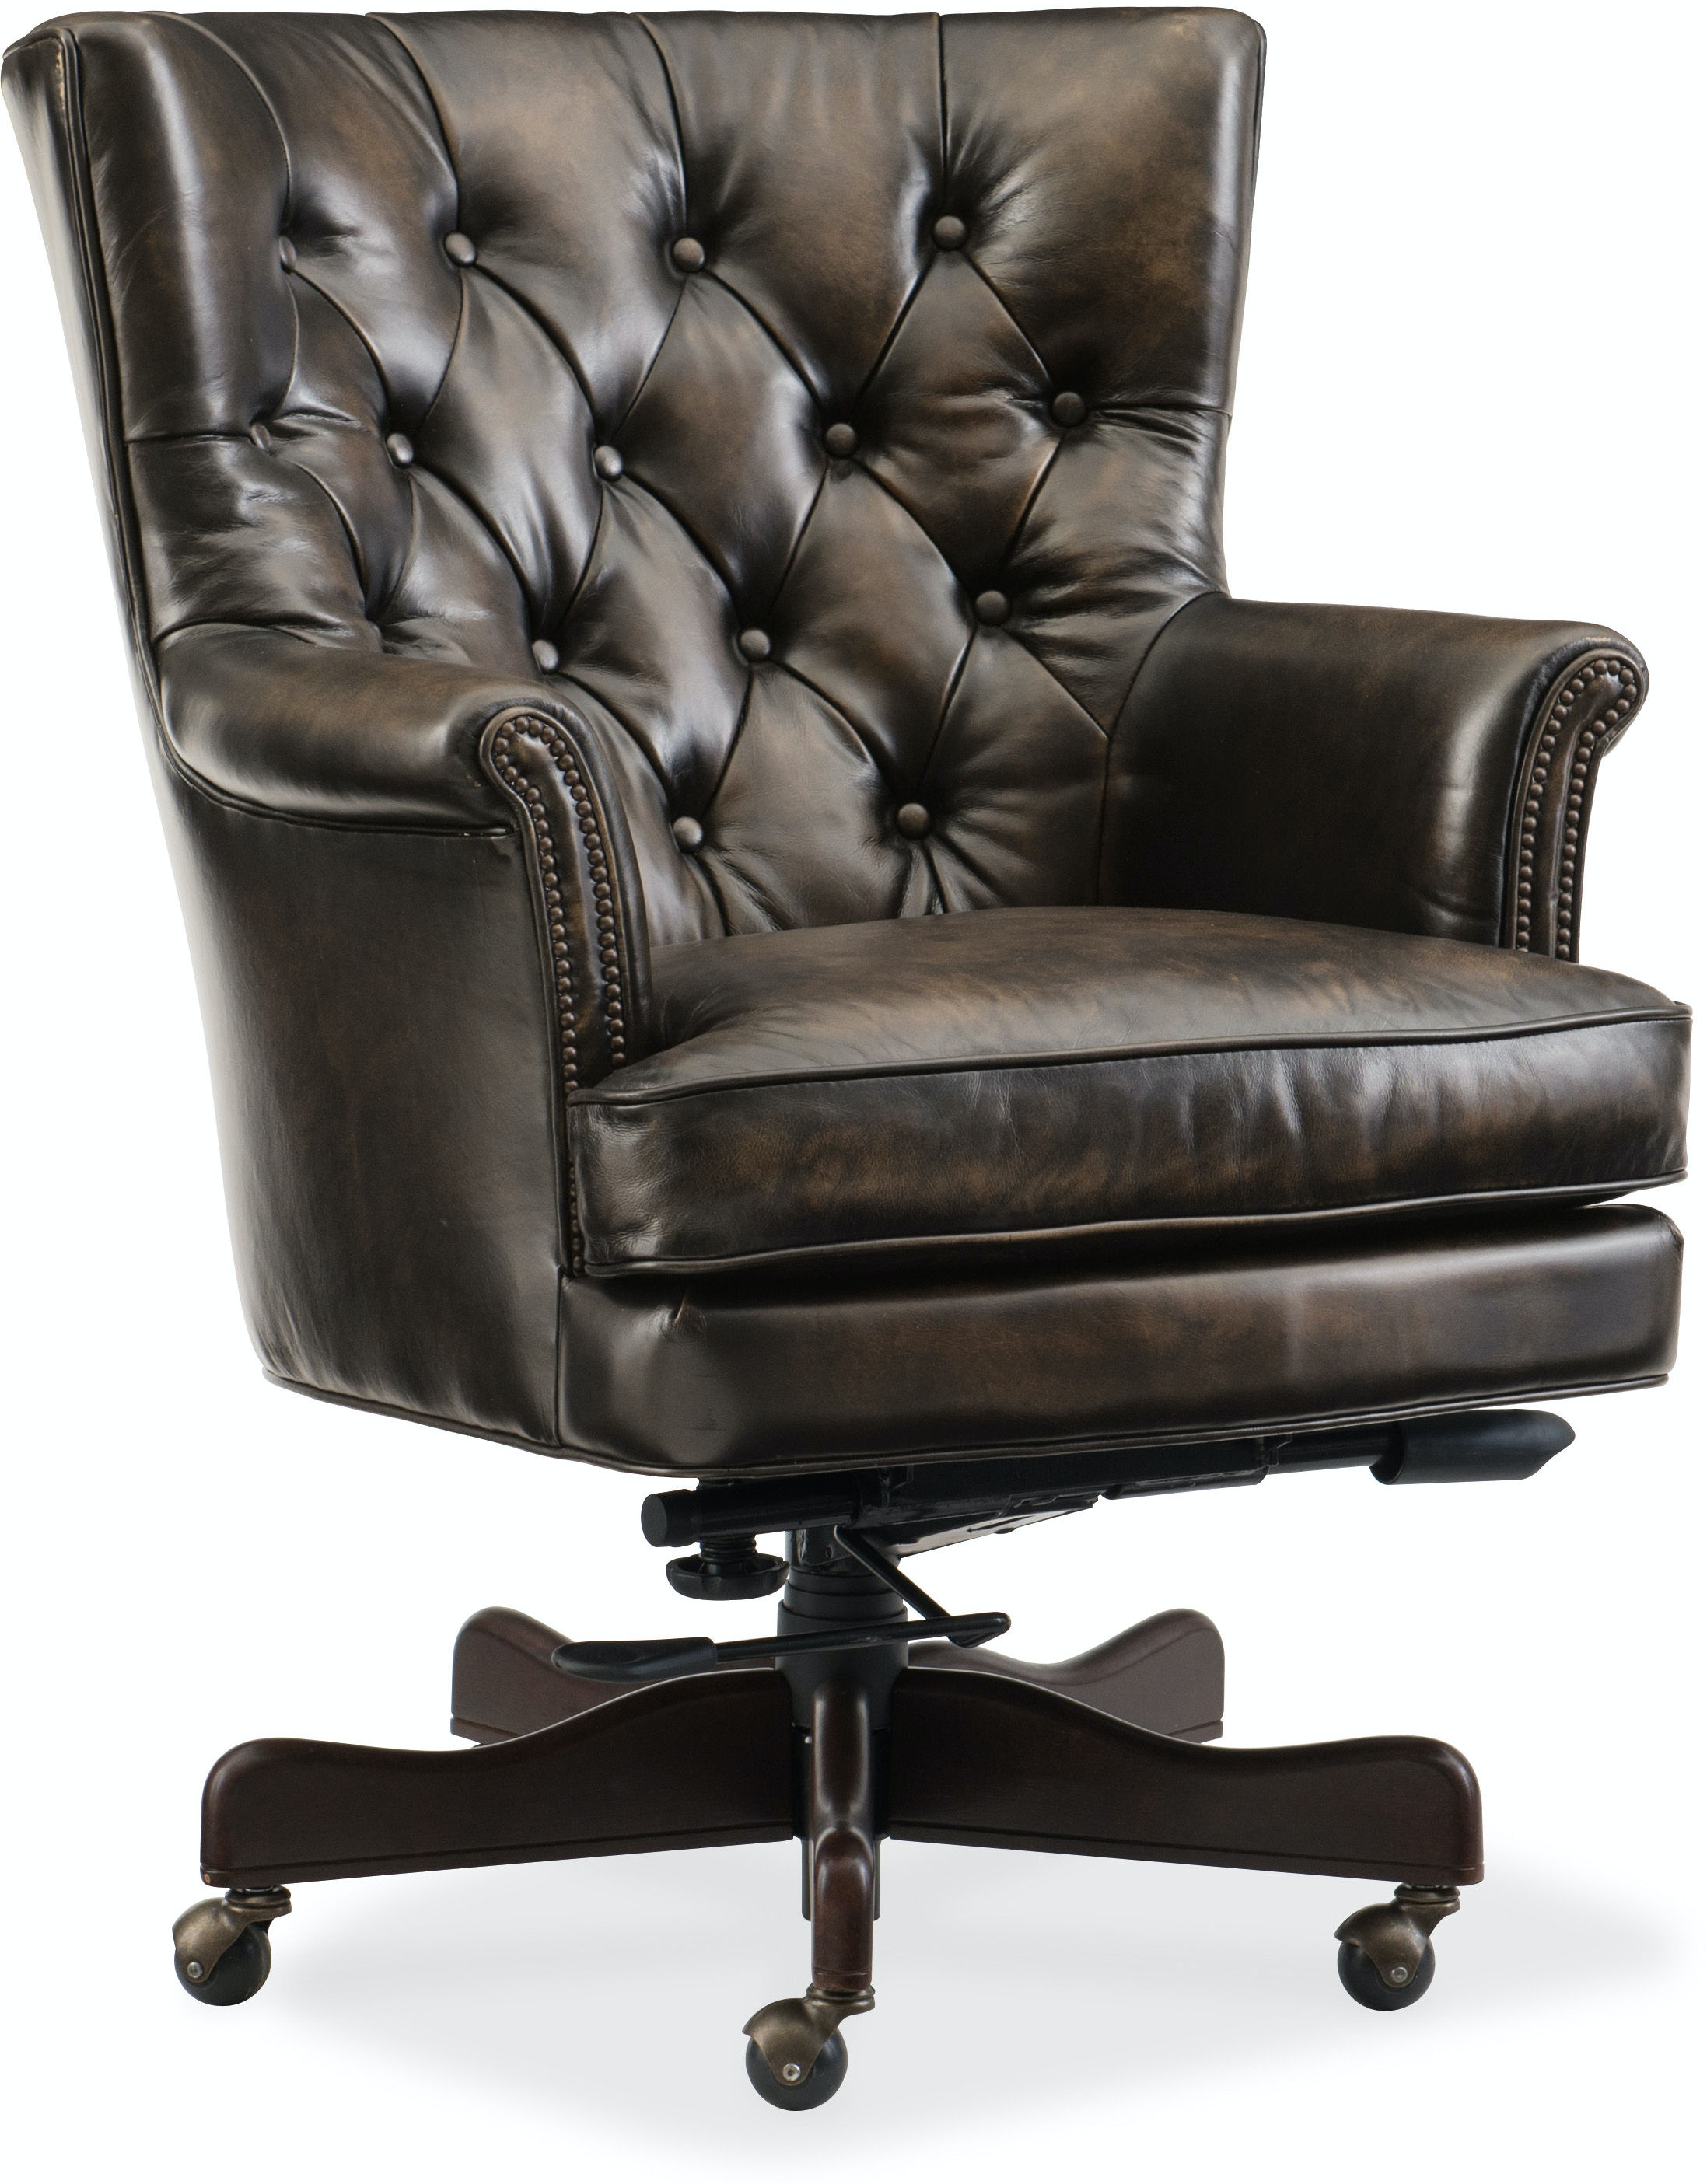 Hooker Furniture Theodore Home fice Chair EC594 088